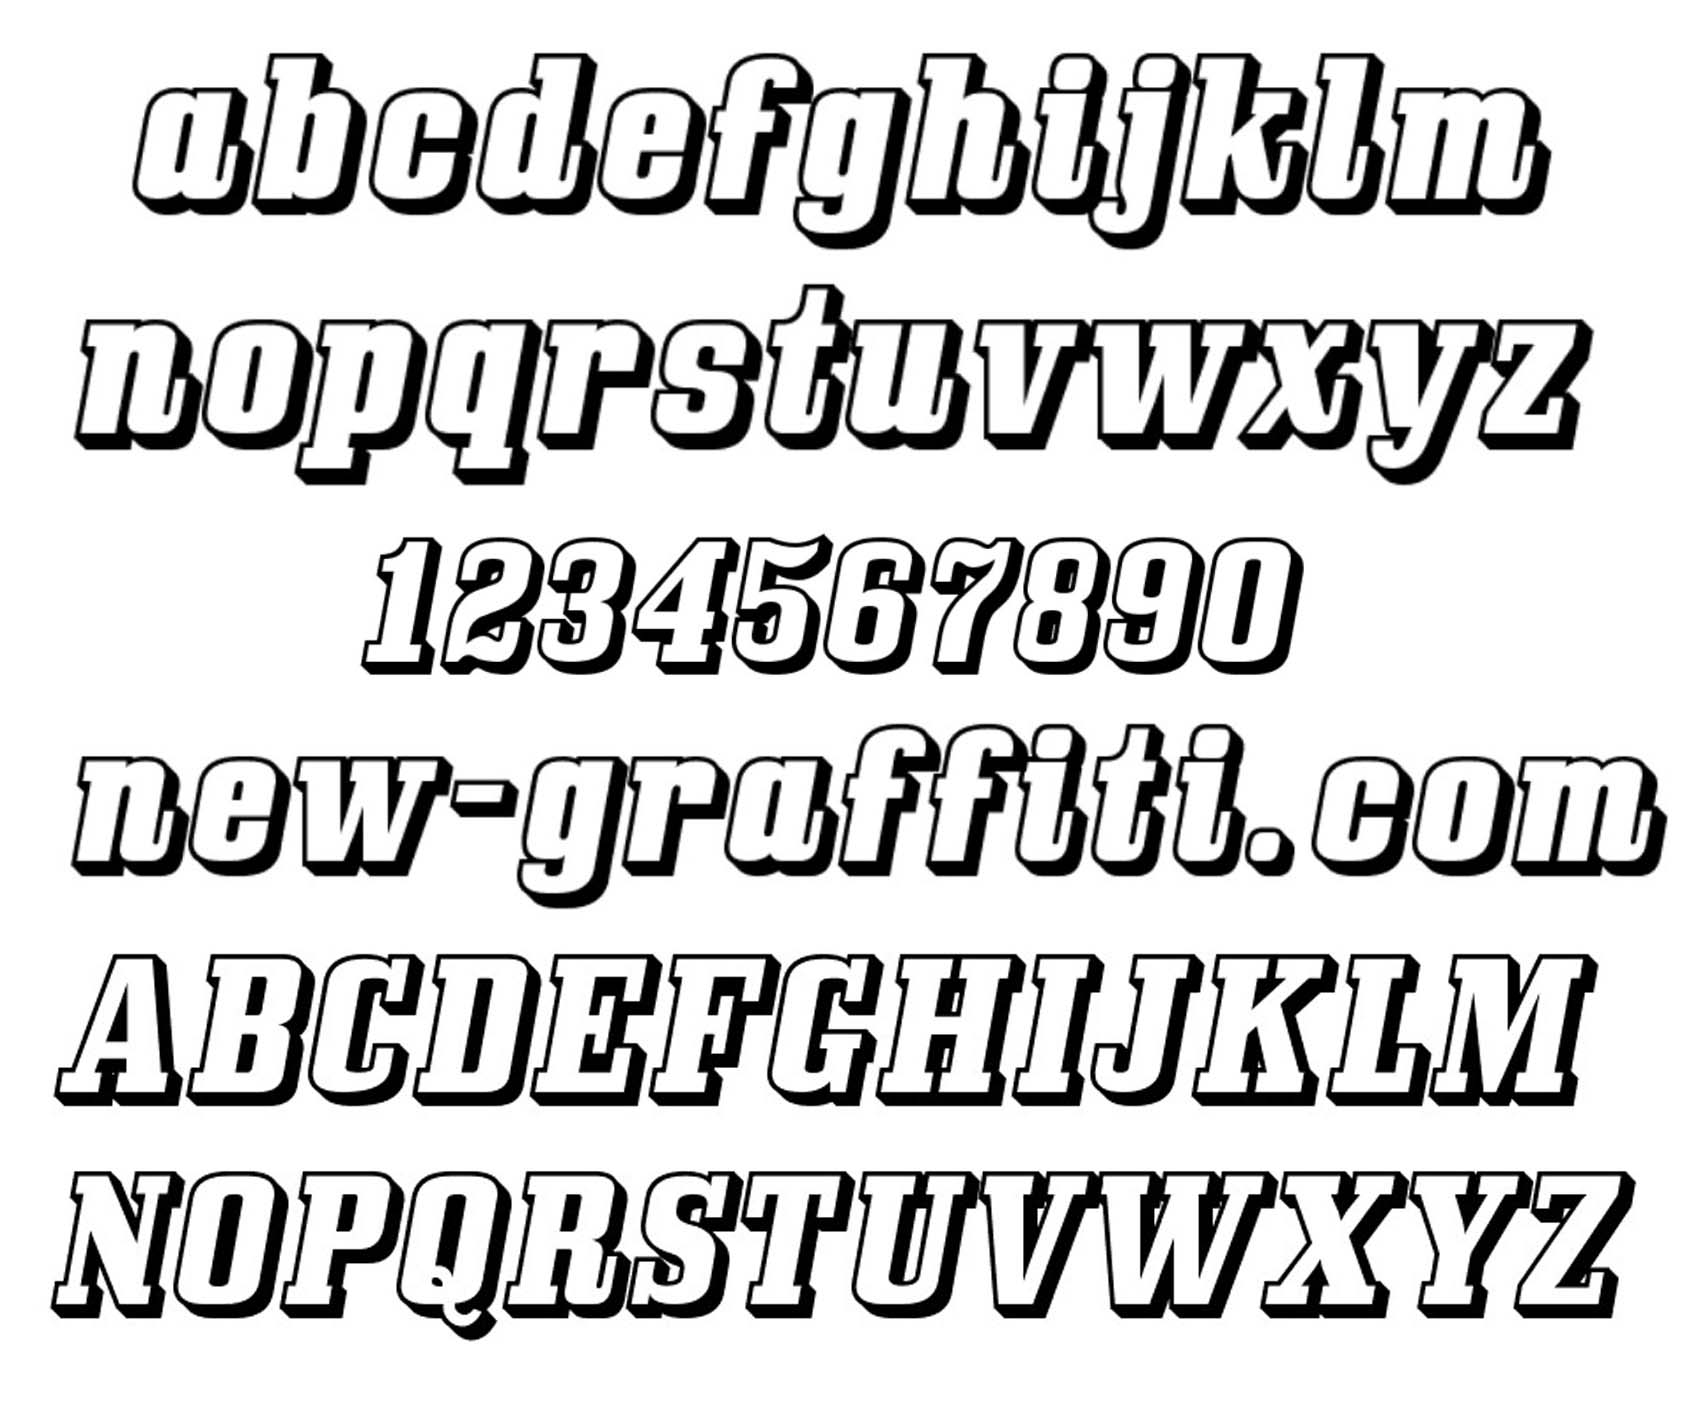 Cool Font Graffiti Alphabet Letters Lowercase